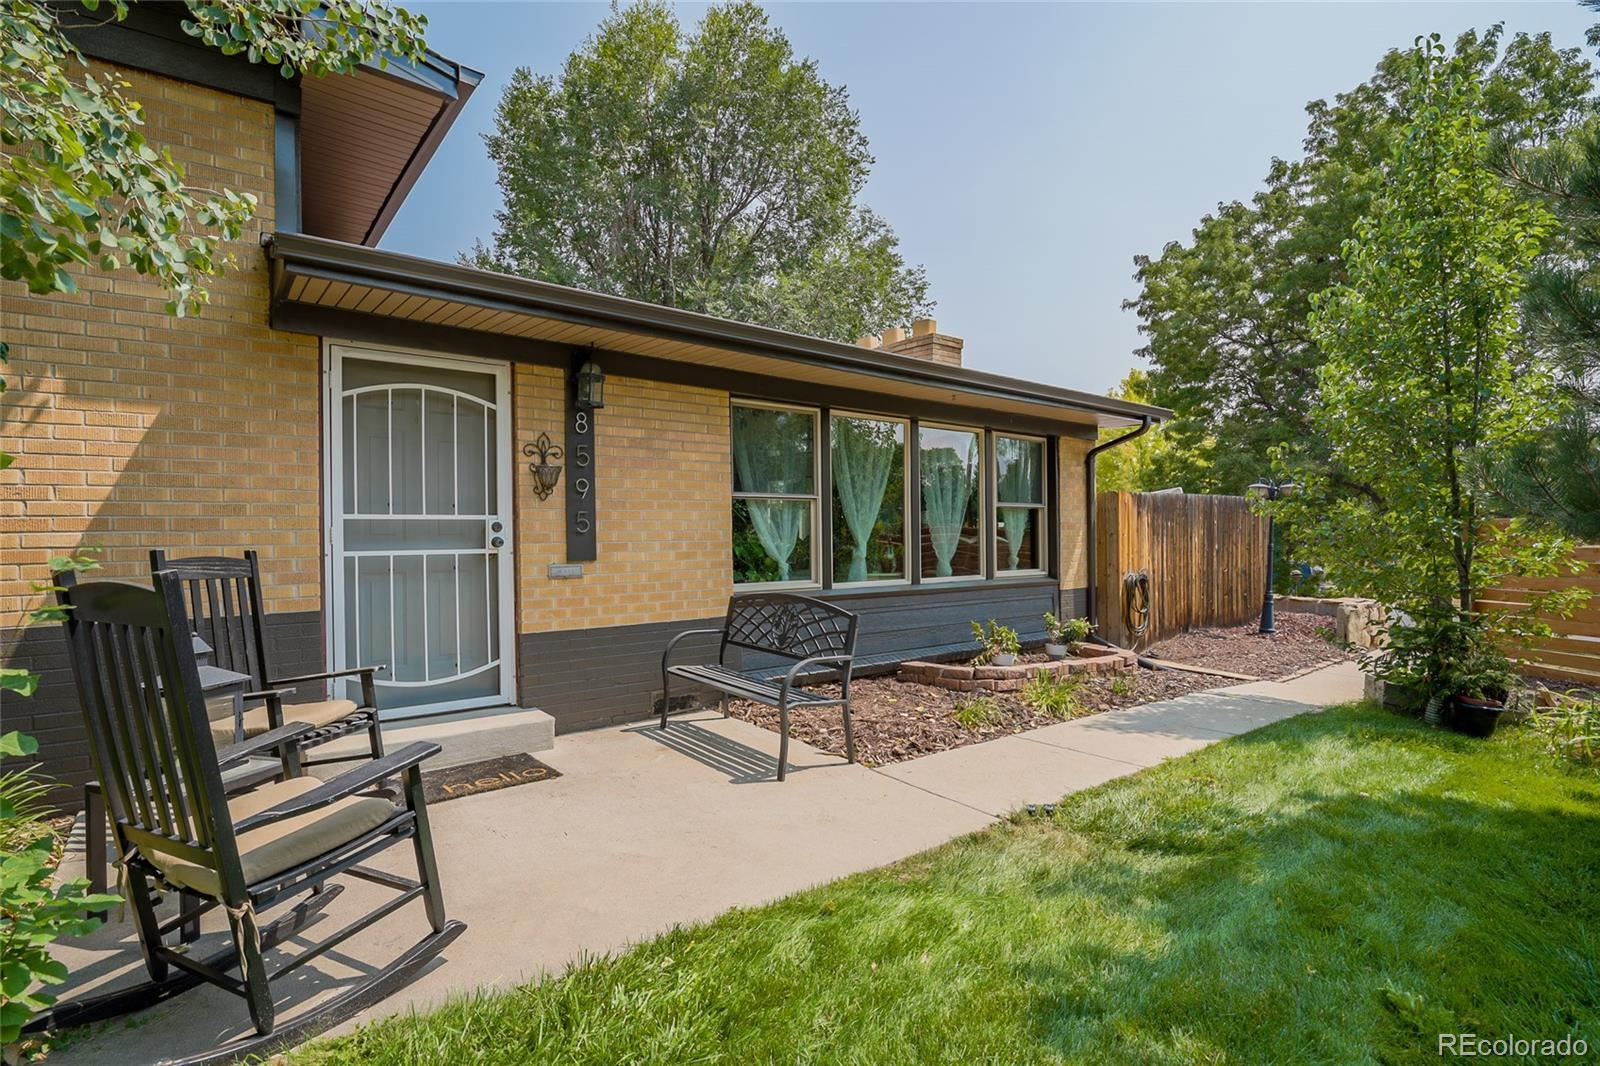 8595 W 64th Place, Arvada, CO 80004 - #: 7299404